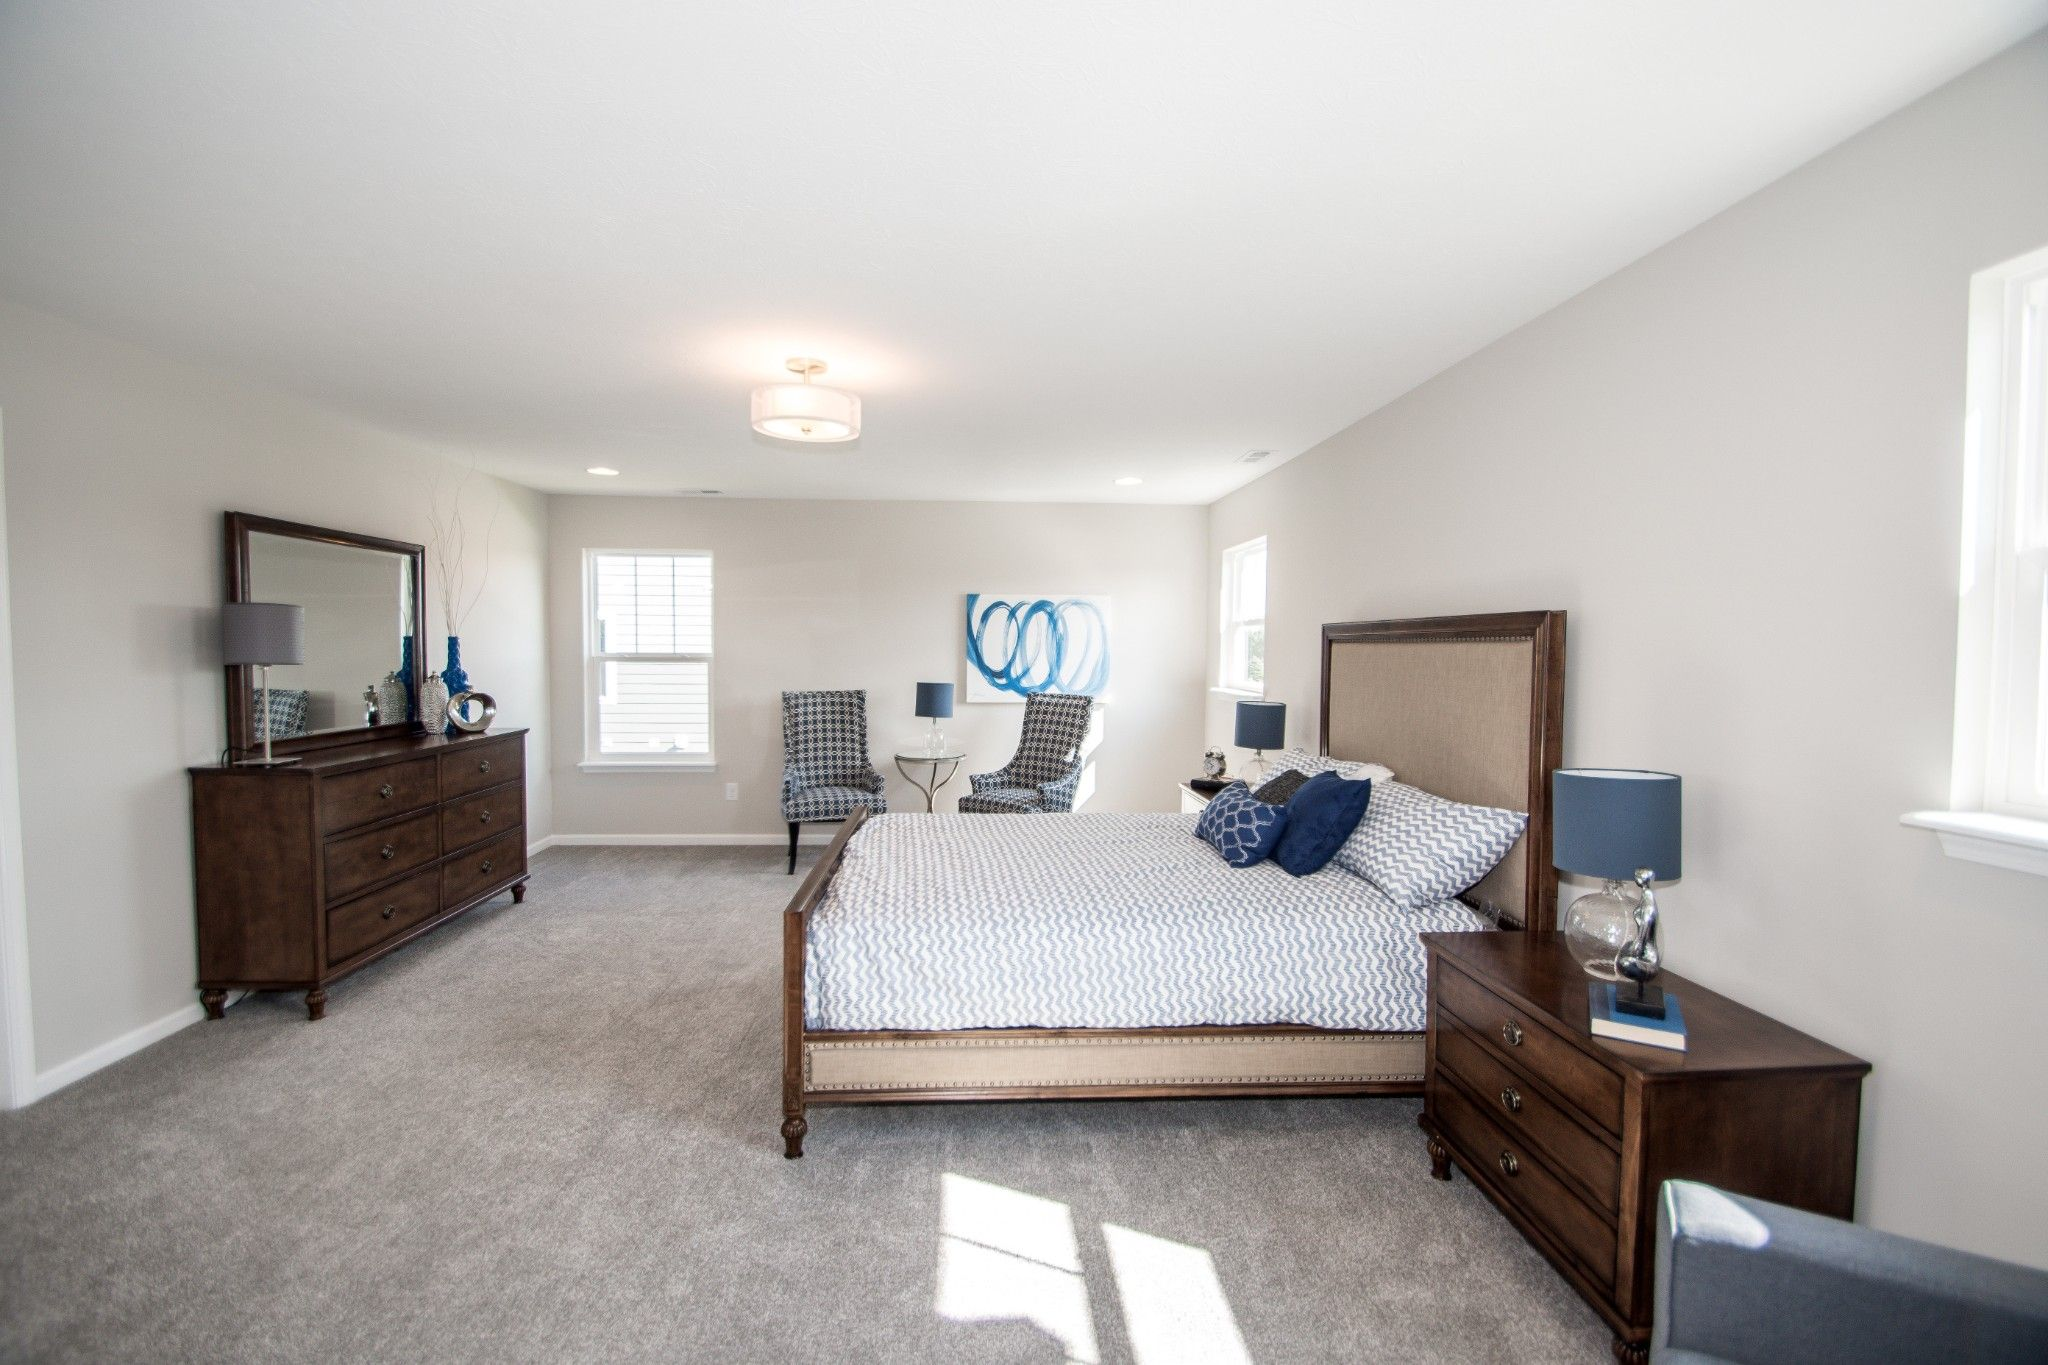 Bedroom featured in the Savannah By Olthof Homes in Indianapolis, IN